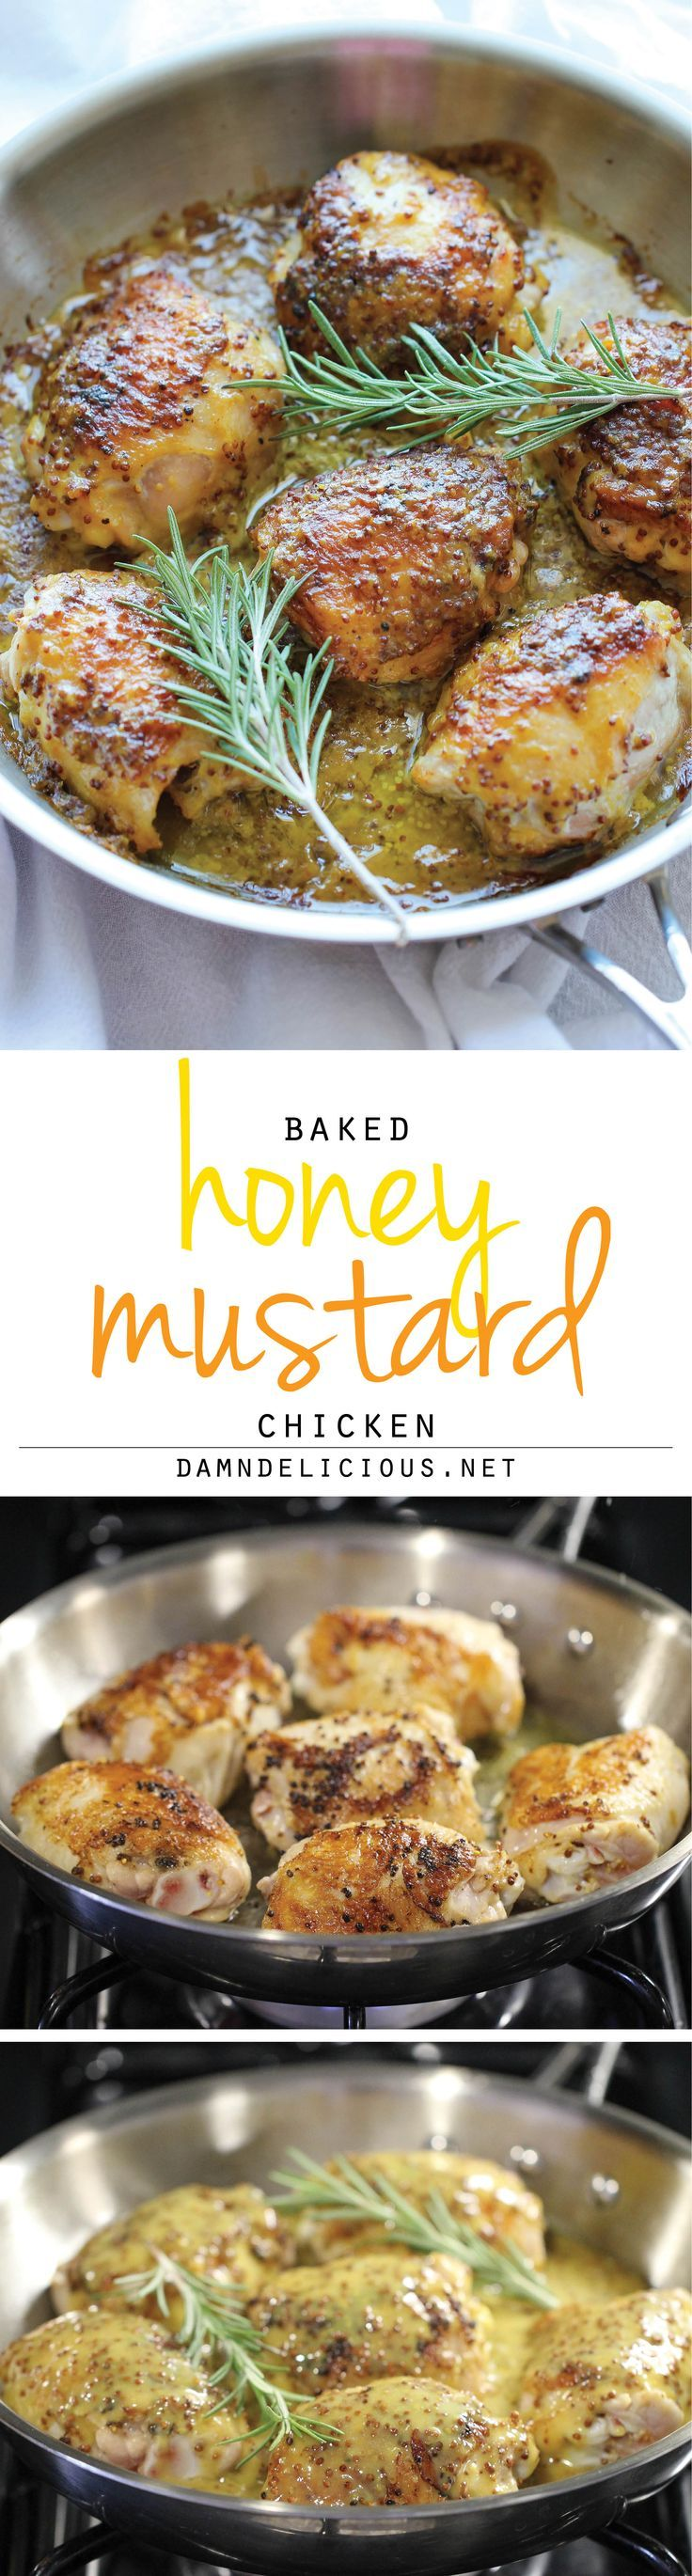 PALEO Baked Honey Mustard Chicken - The creamiest honey mustard chicken ever! It's so good, you'll want to eat the mustard itself with a spoon!